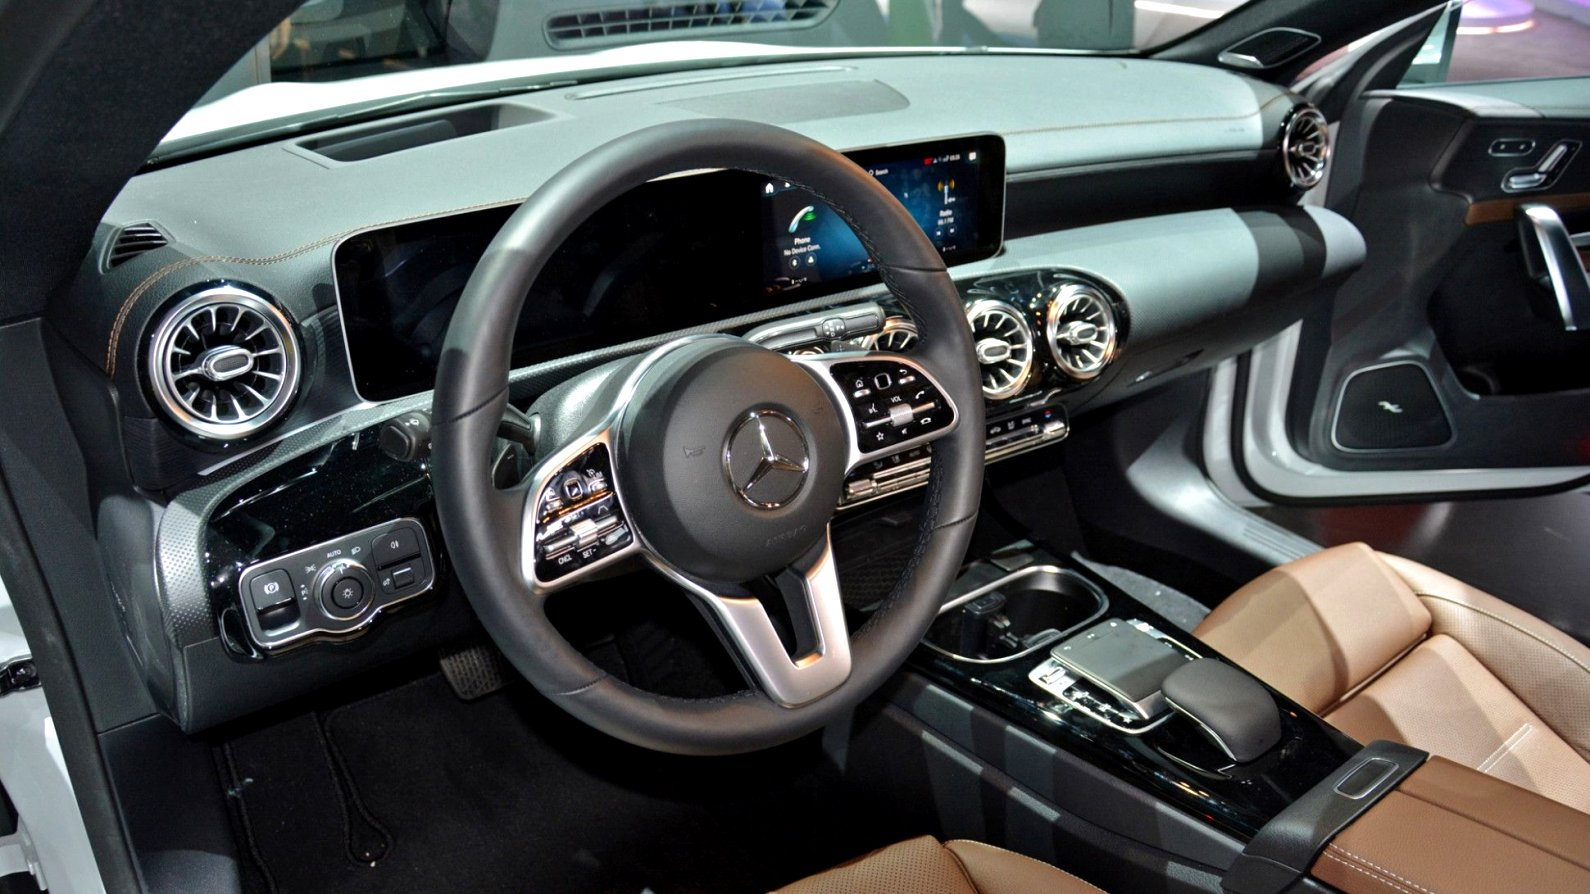 2020 mercedes a class interior First Drive